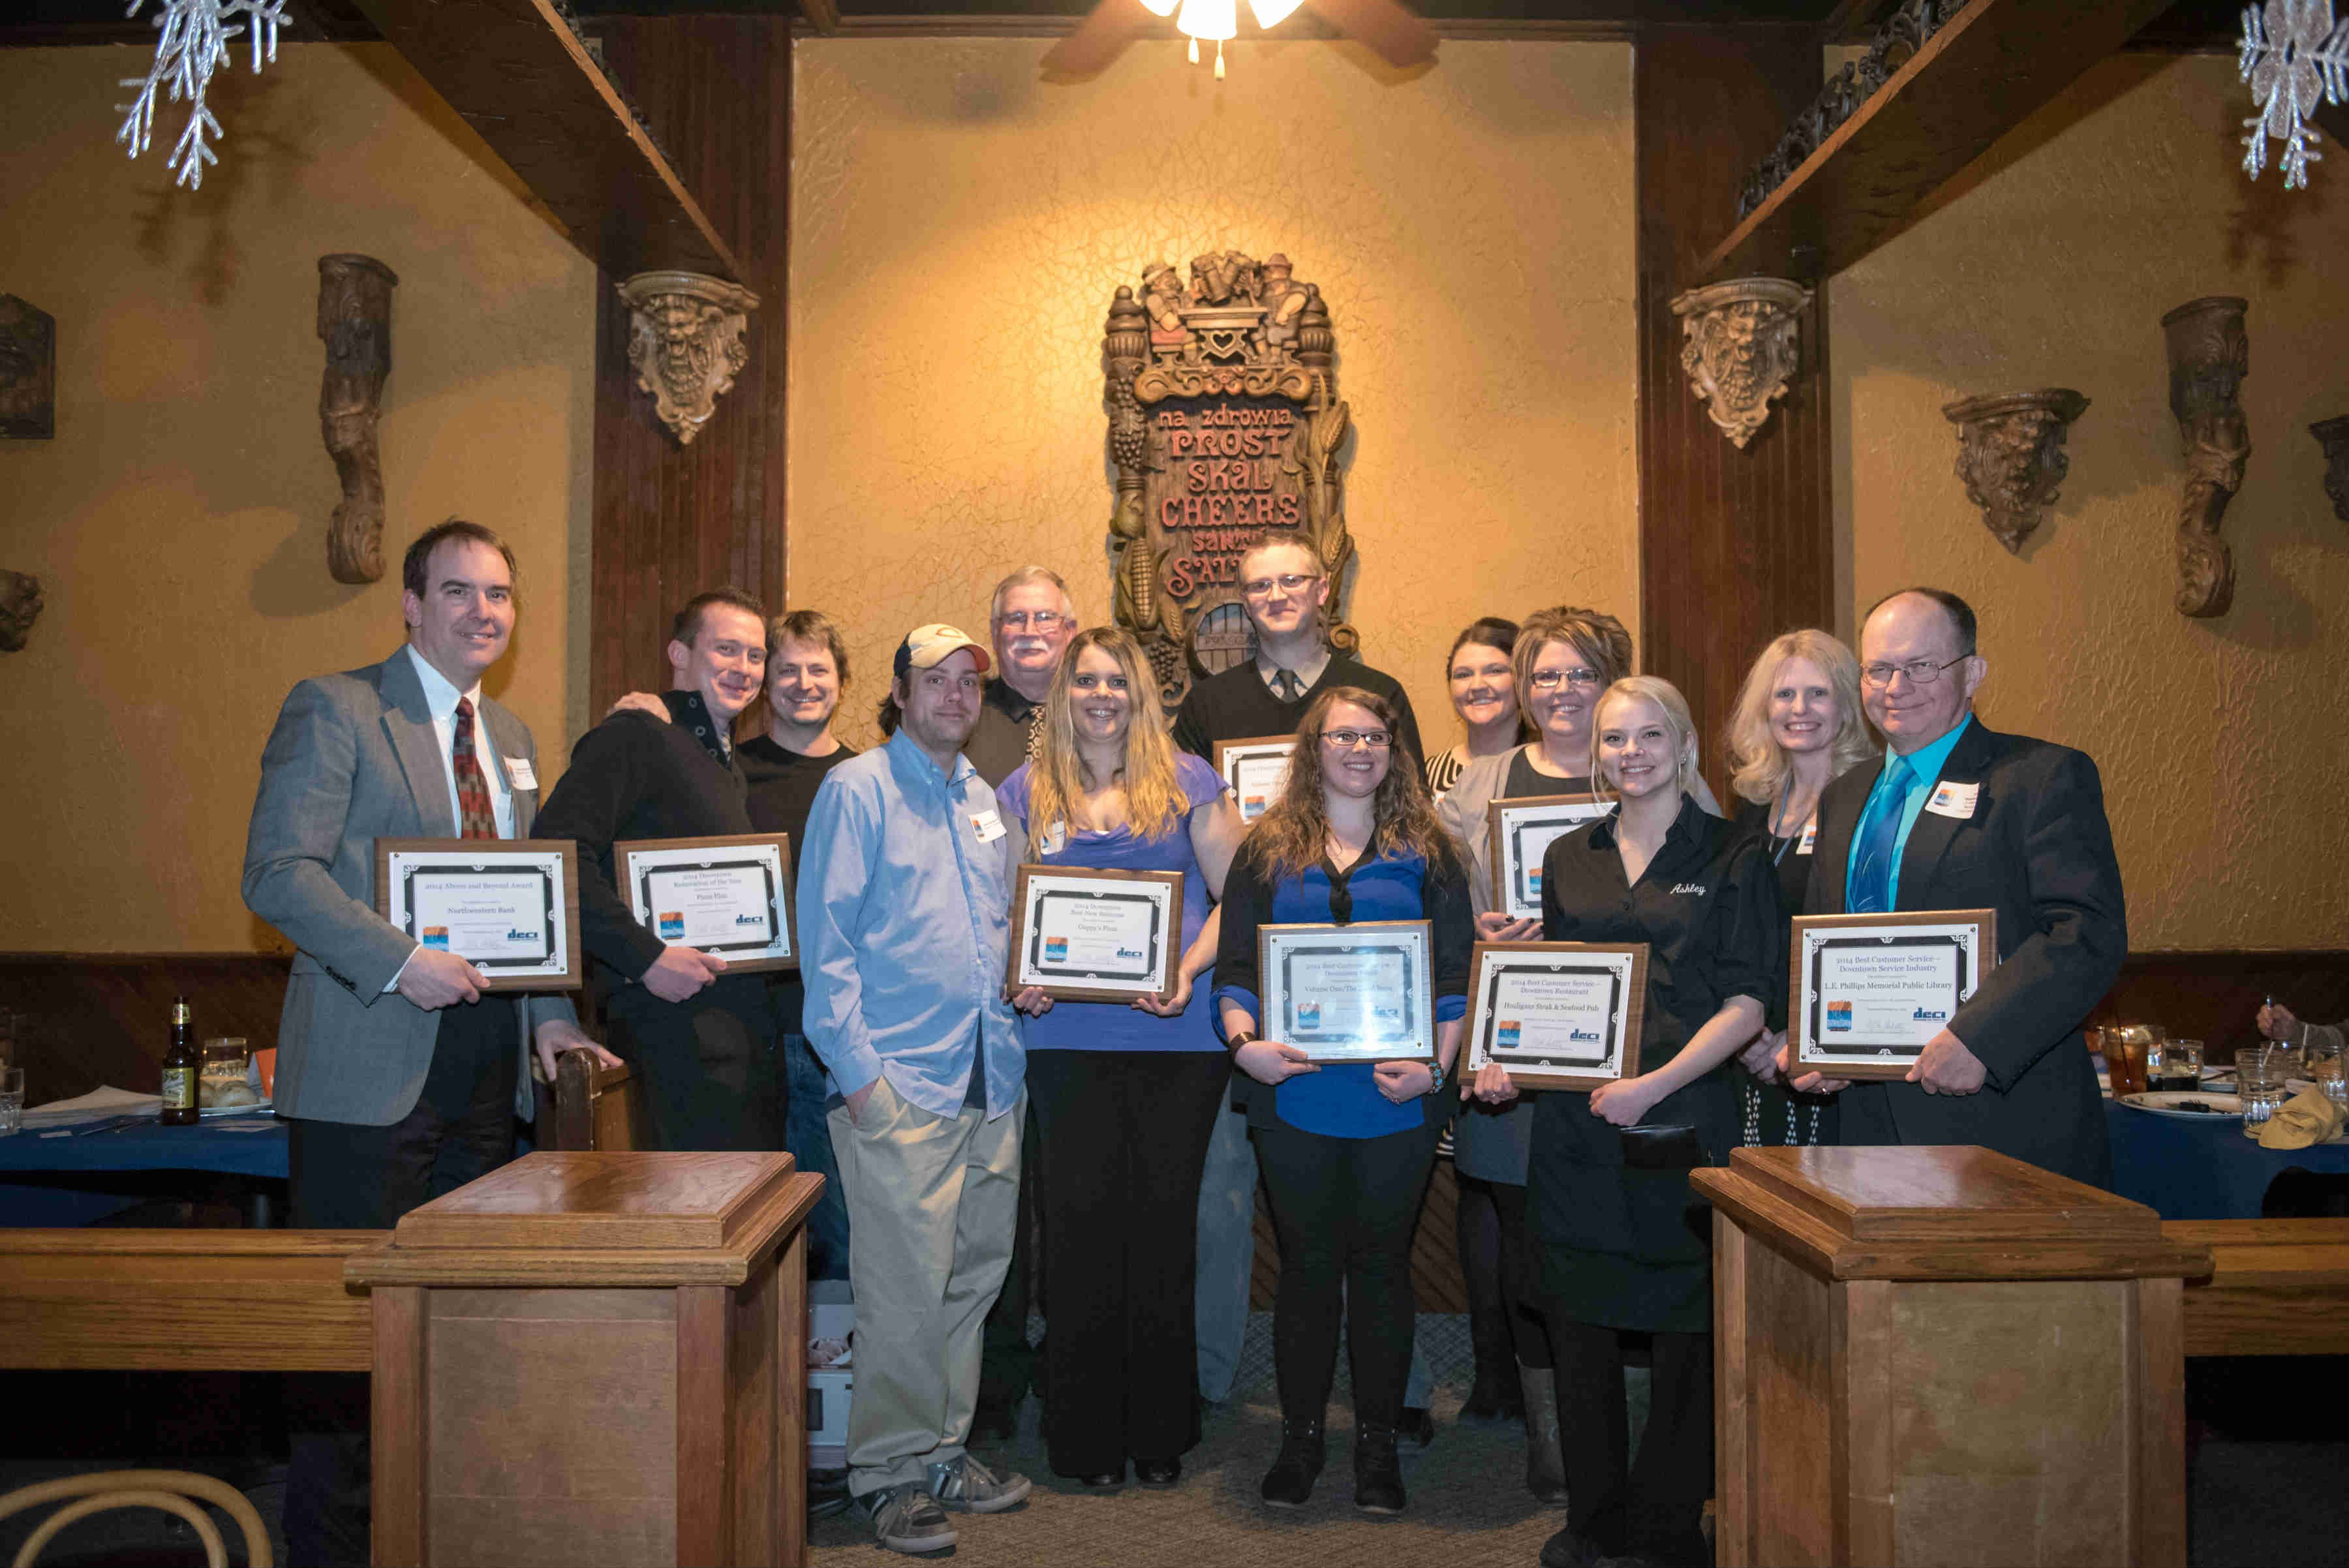 The 13 winners were announced at the Downtown Eau Claire Annual Awards Banquet Wednesday night.